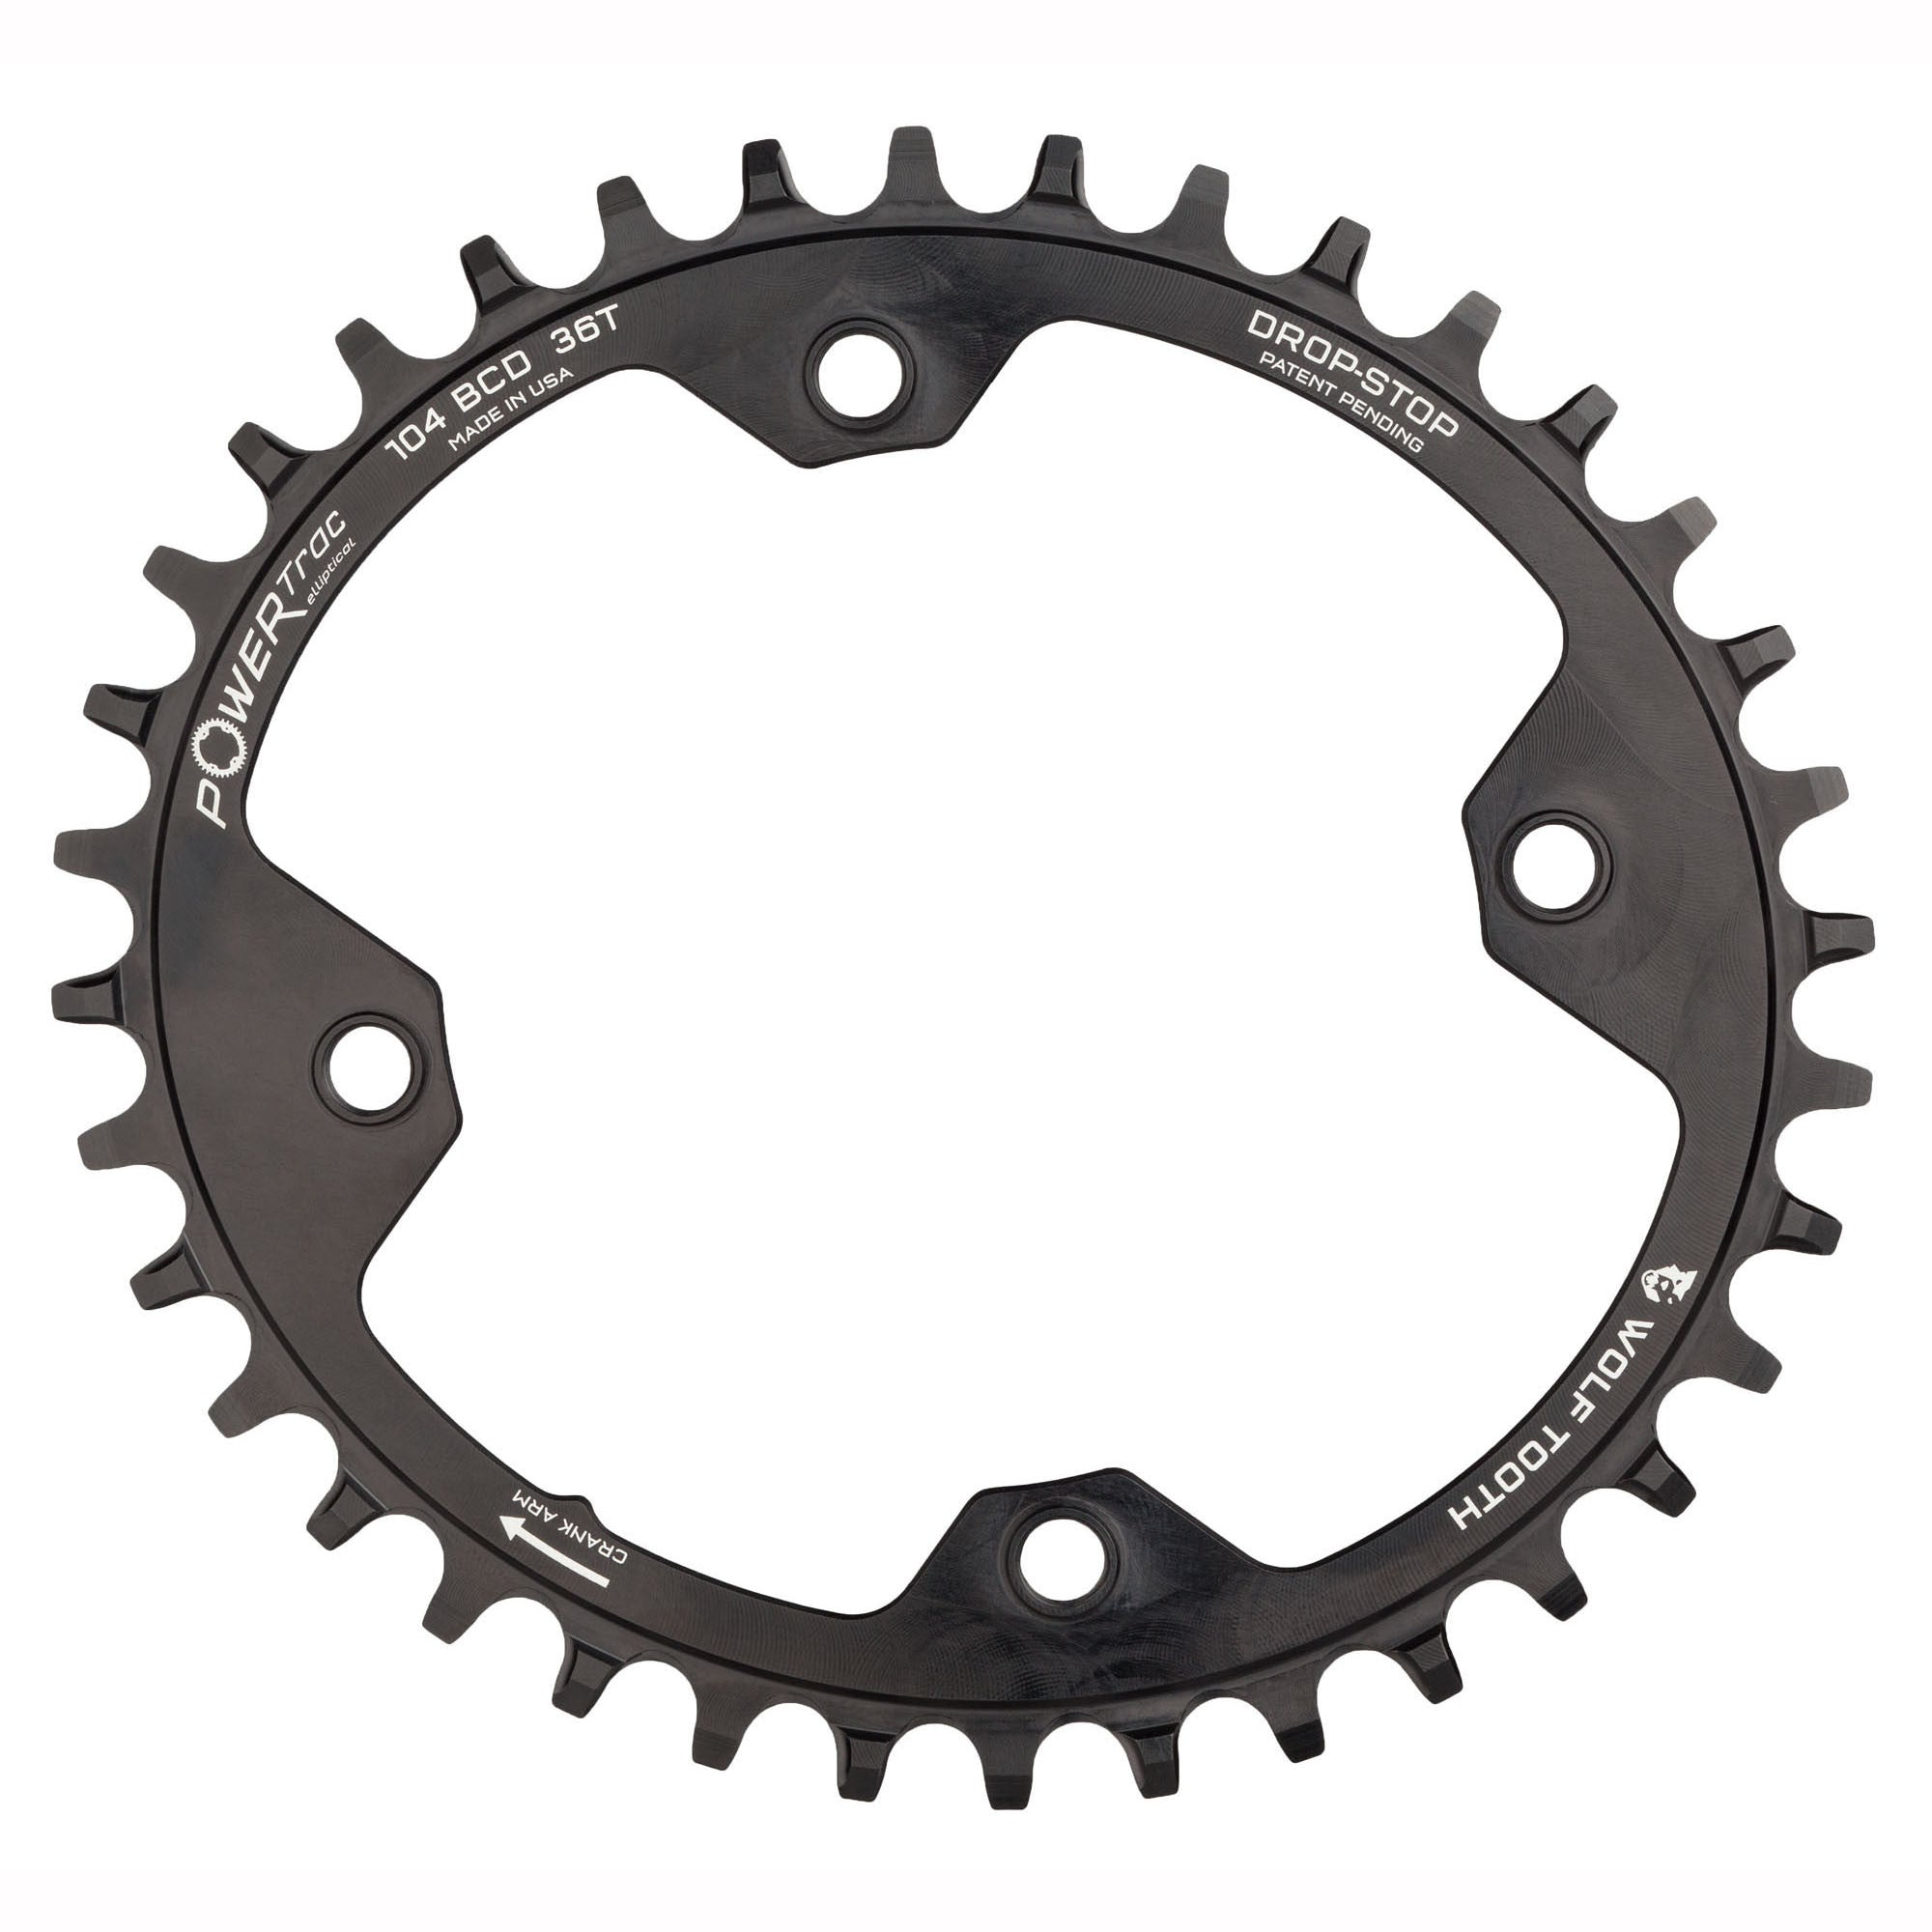 Black Wolf Tooth 32t 104bcd Drop-Stop Chainring